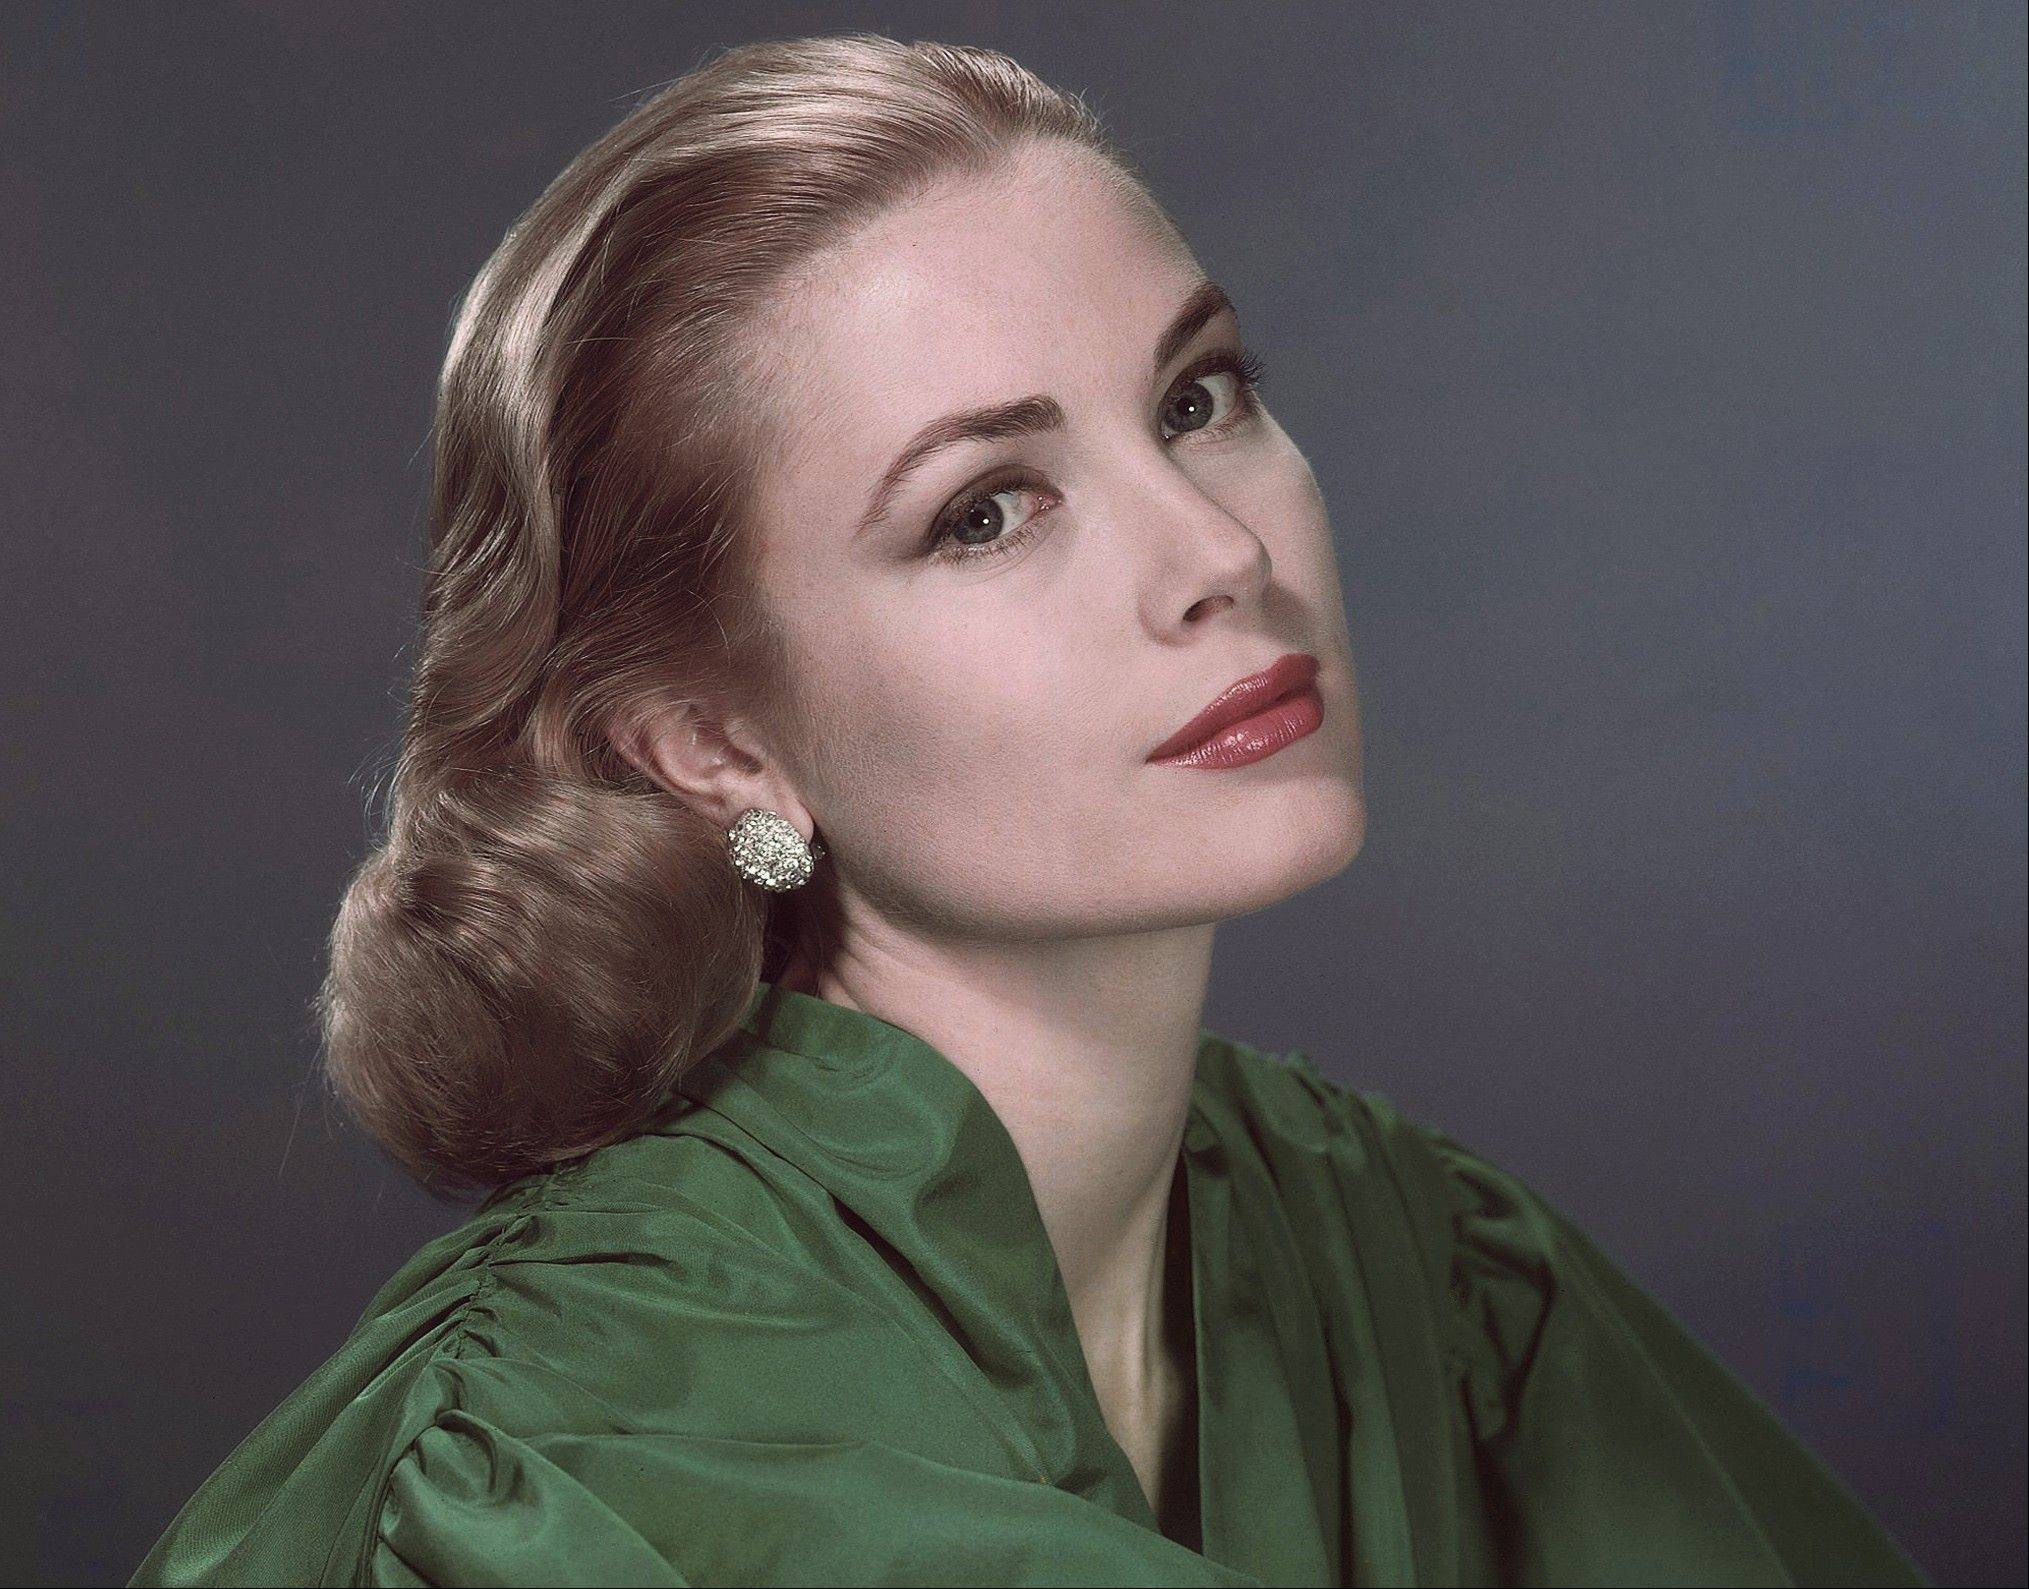 An exhibit on Grace Kelly�s upbringing, Hollywood career and storybook ascent to royalty opens Oct. 28 at the Michener Art Museum in suburban Doylestown, Pa., not far from where Kelly made her professional stage debut at the Bucks County Playhouse in 1949.